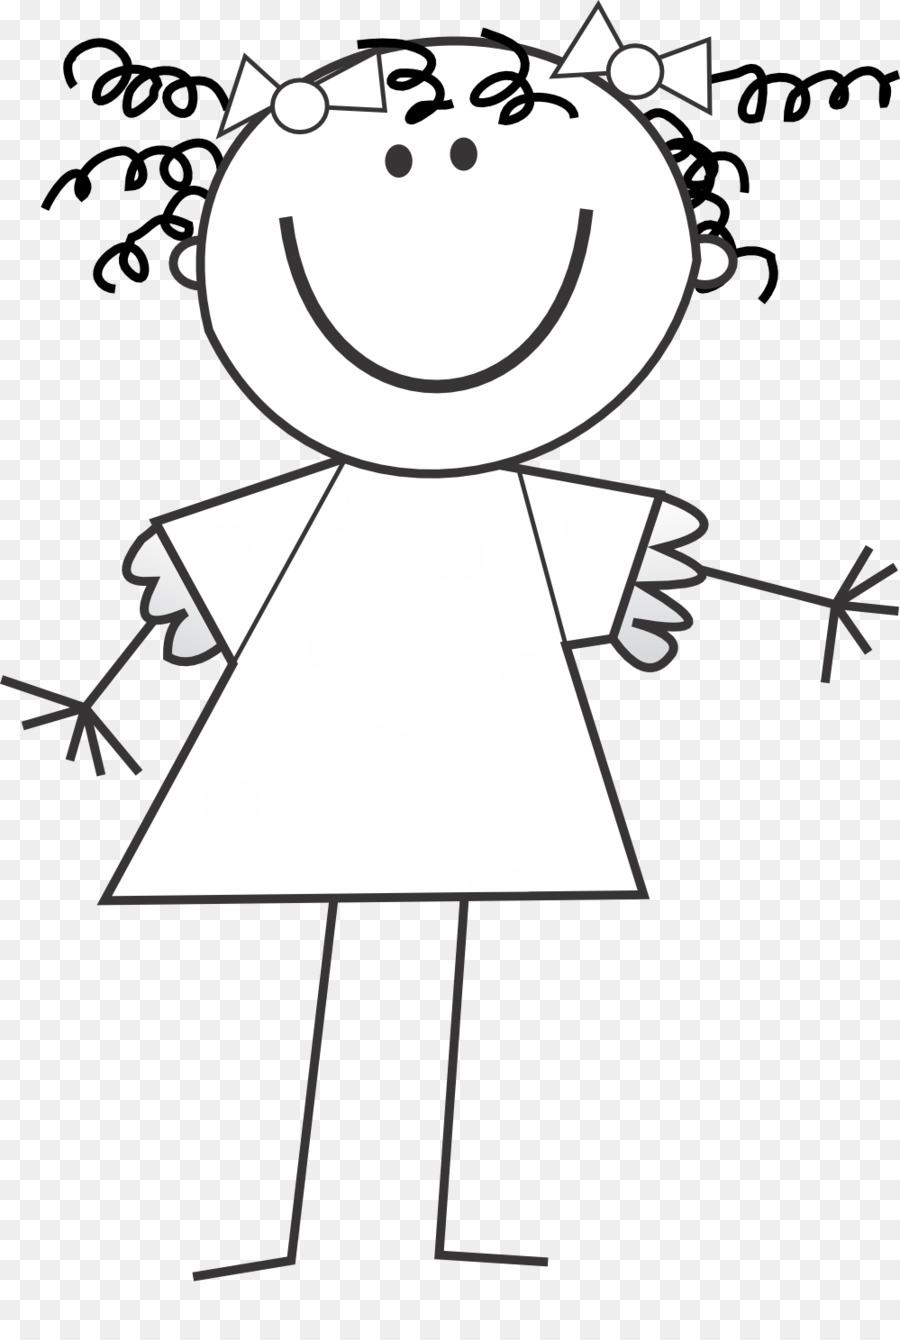 Black and white stick chldren clipart free image free library Free Kids Stick People Black And White Png & Free Kids Stick People ... image free library